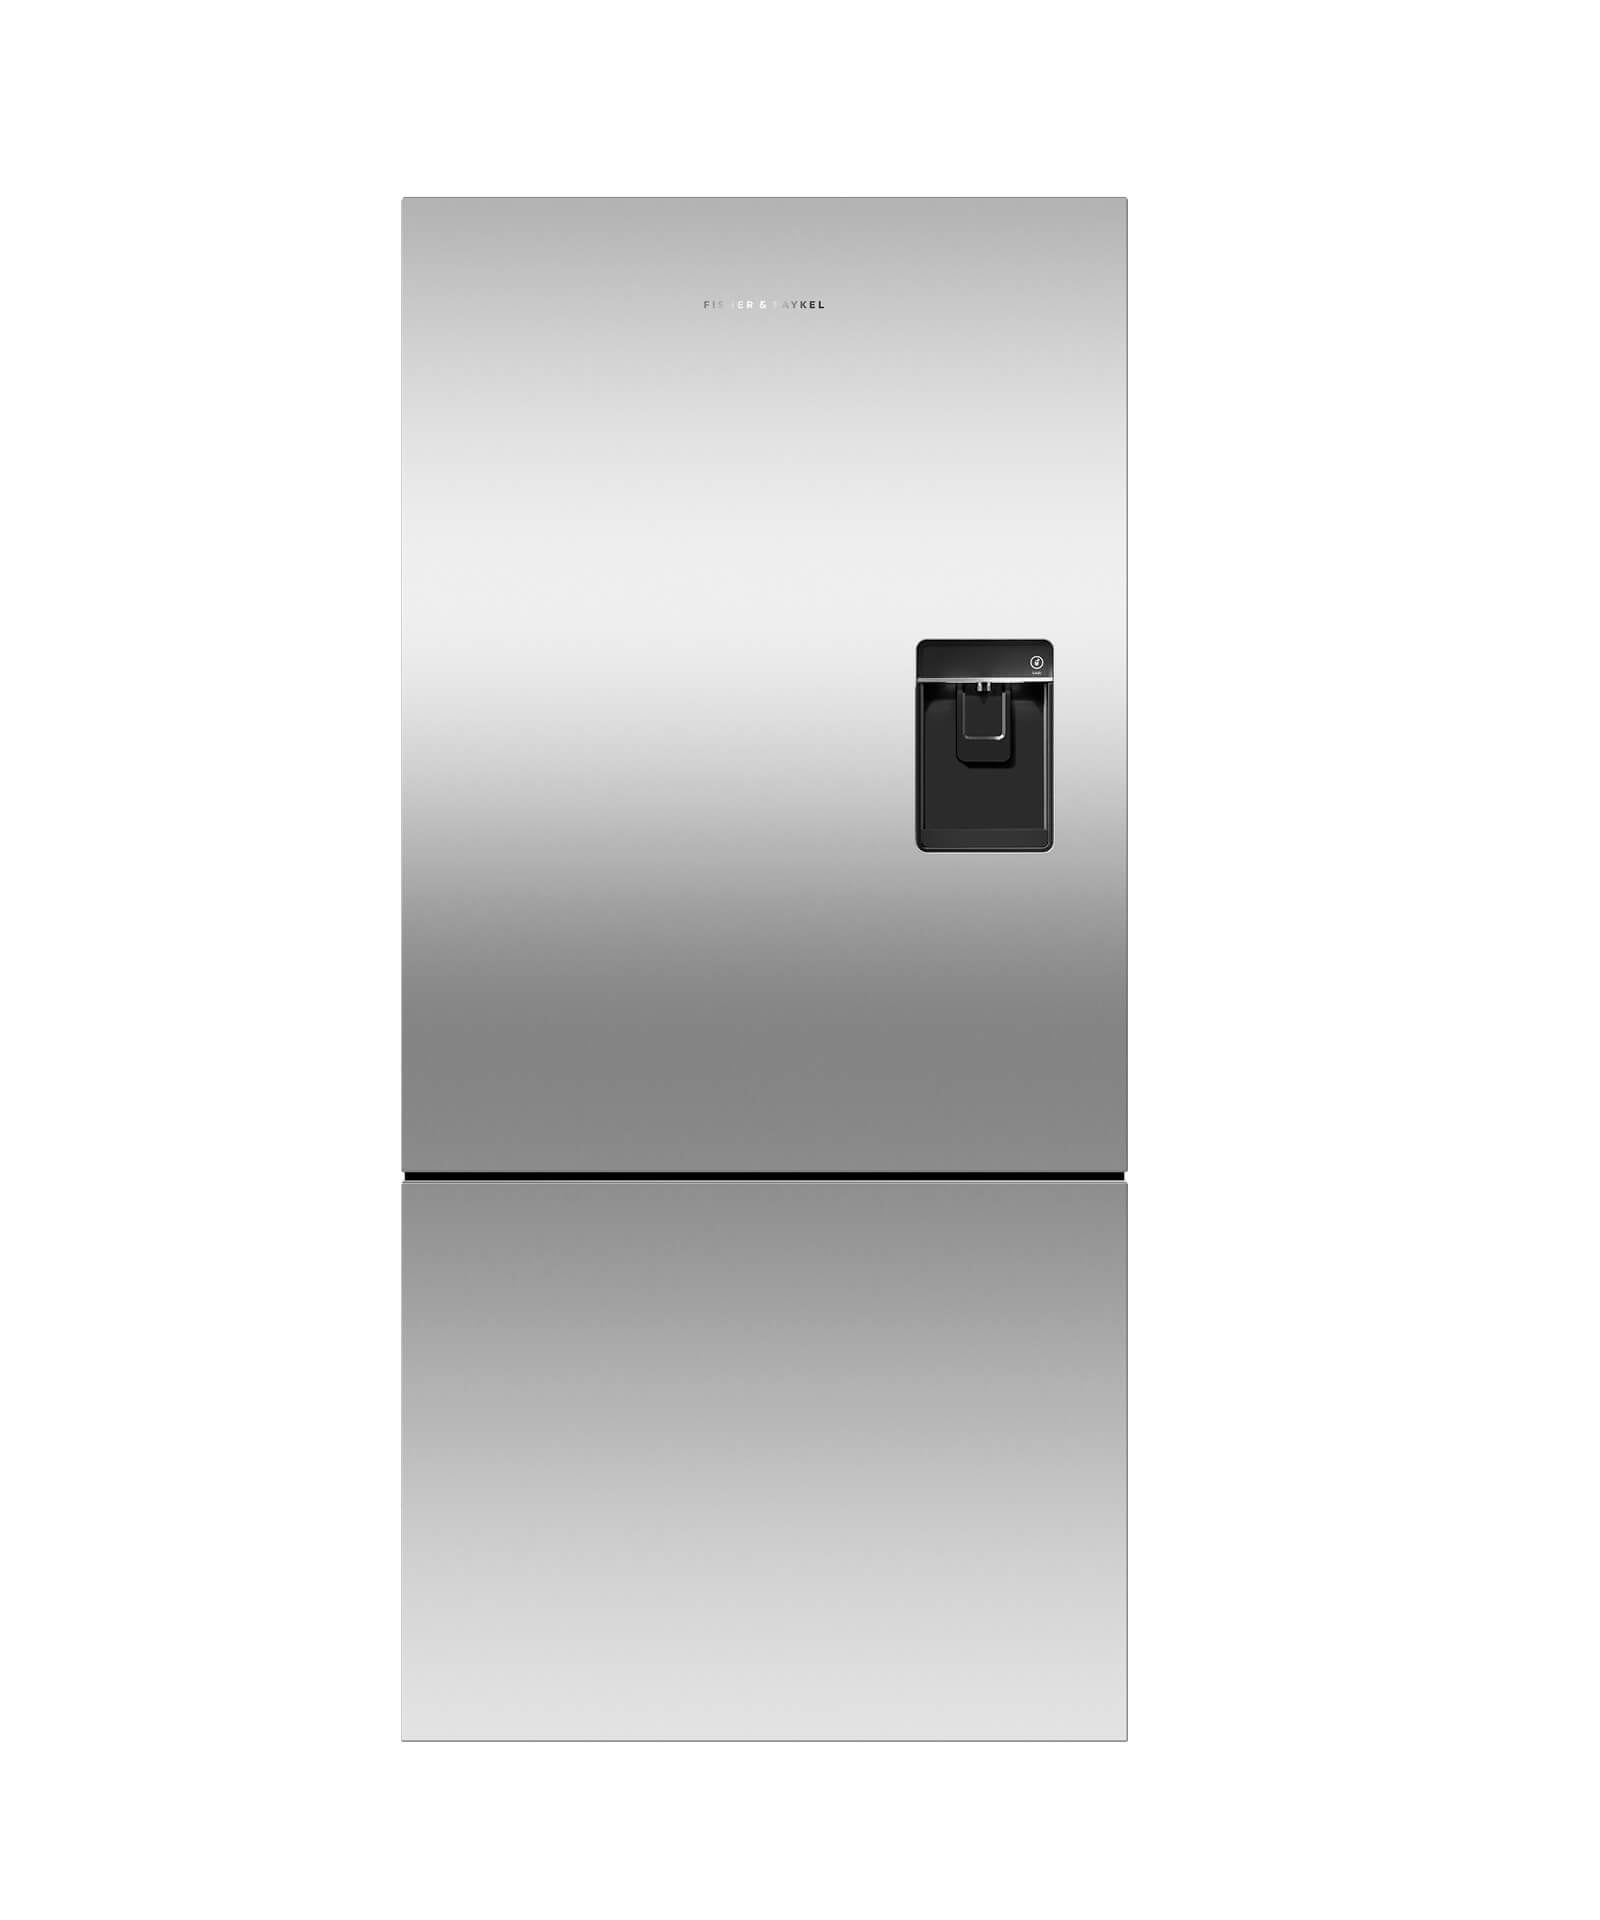 RF522BRPUX6 - ActiveSmart™ Fridge - 790mm Bottom Freezer with Ice & Water 469L - 24515